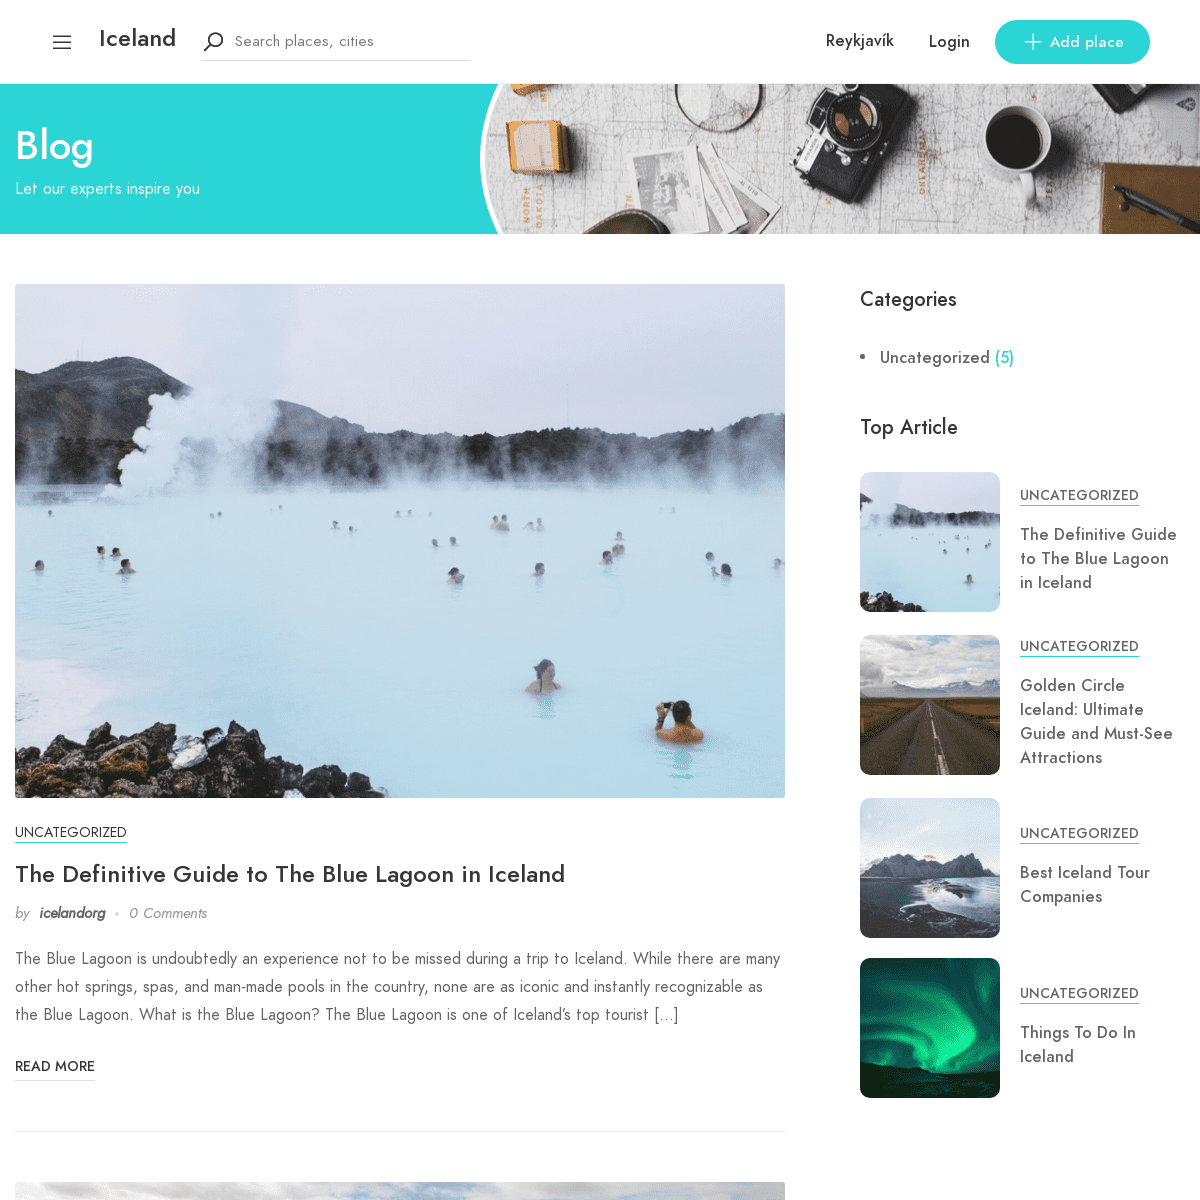 Iceland.org - Best Hotels and Car Rentals